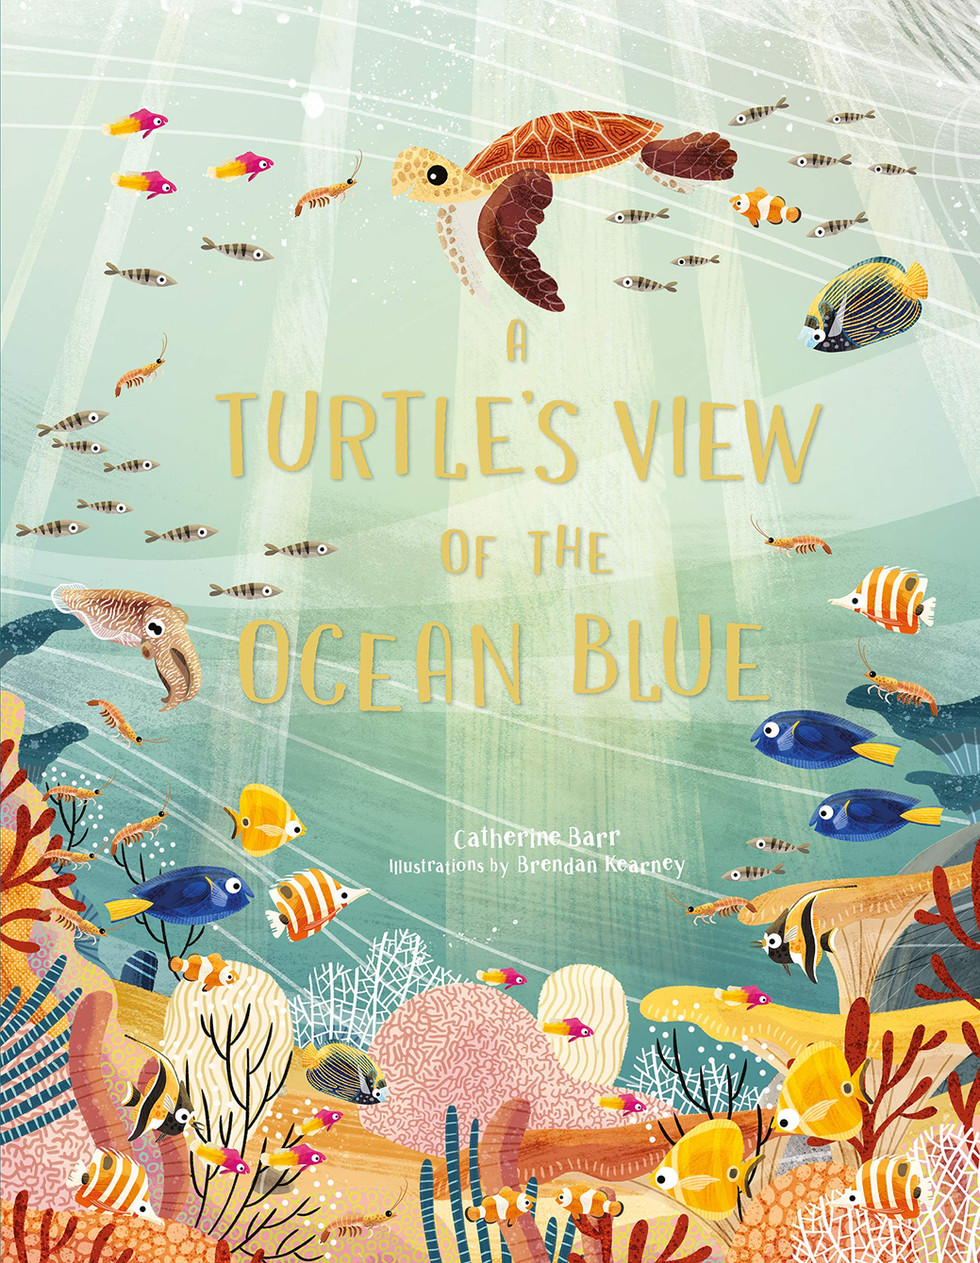 A Turtle's view of the ocean blue